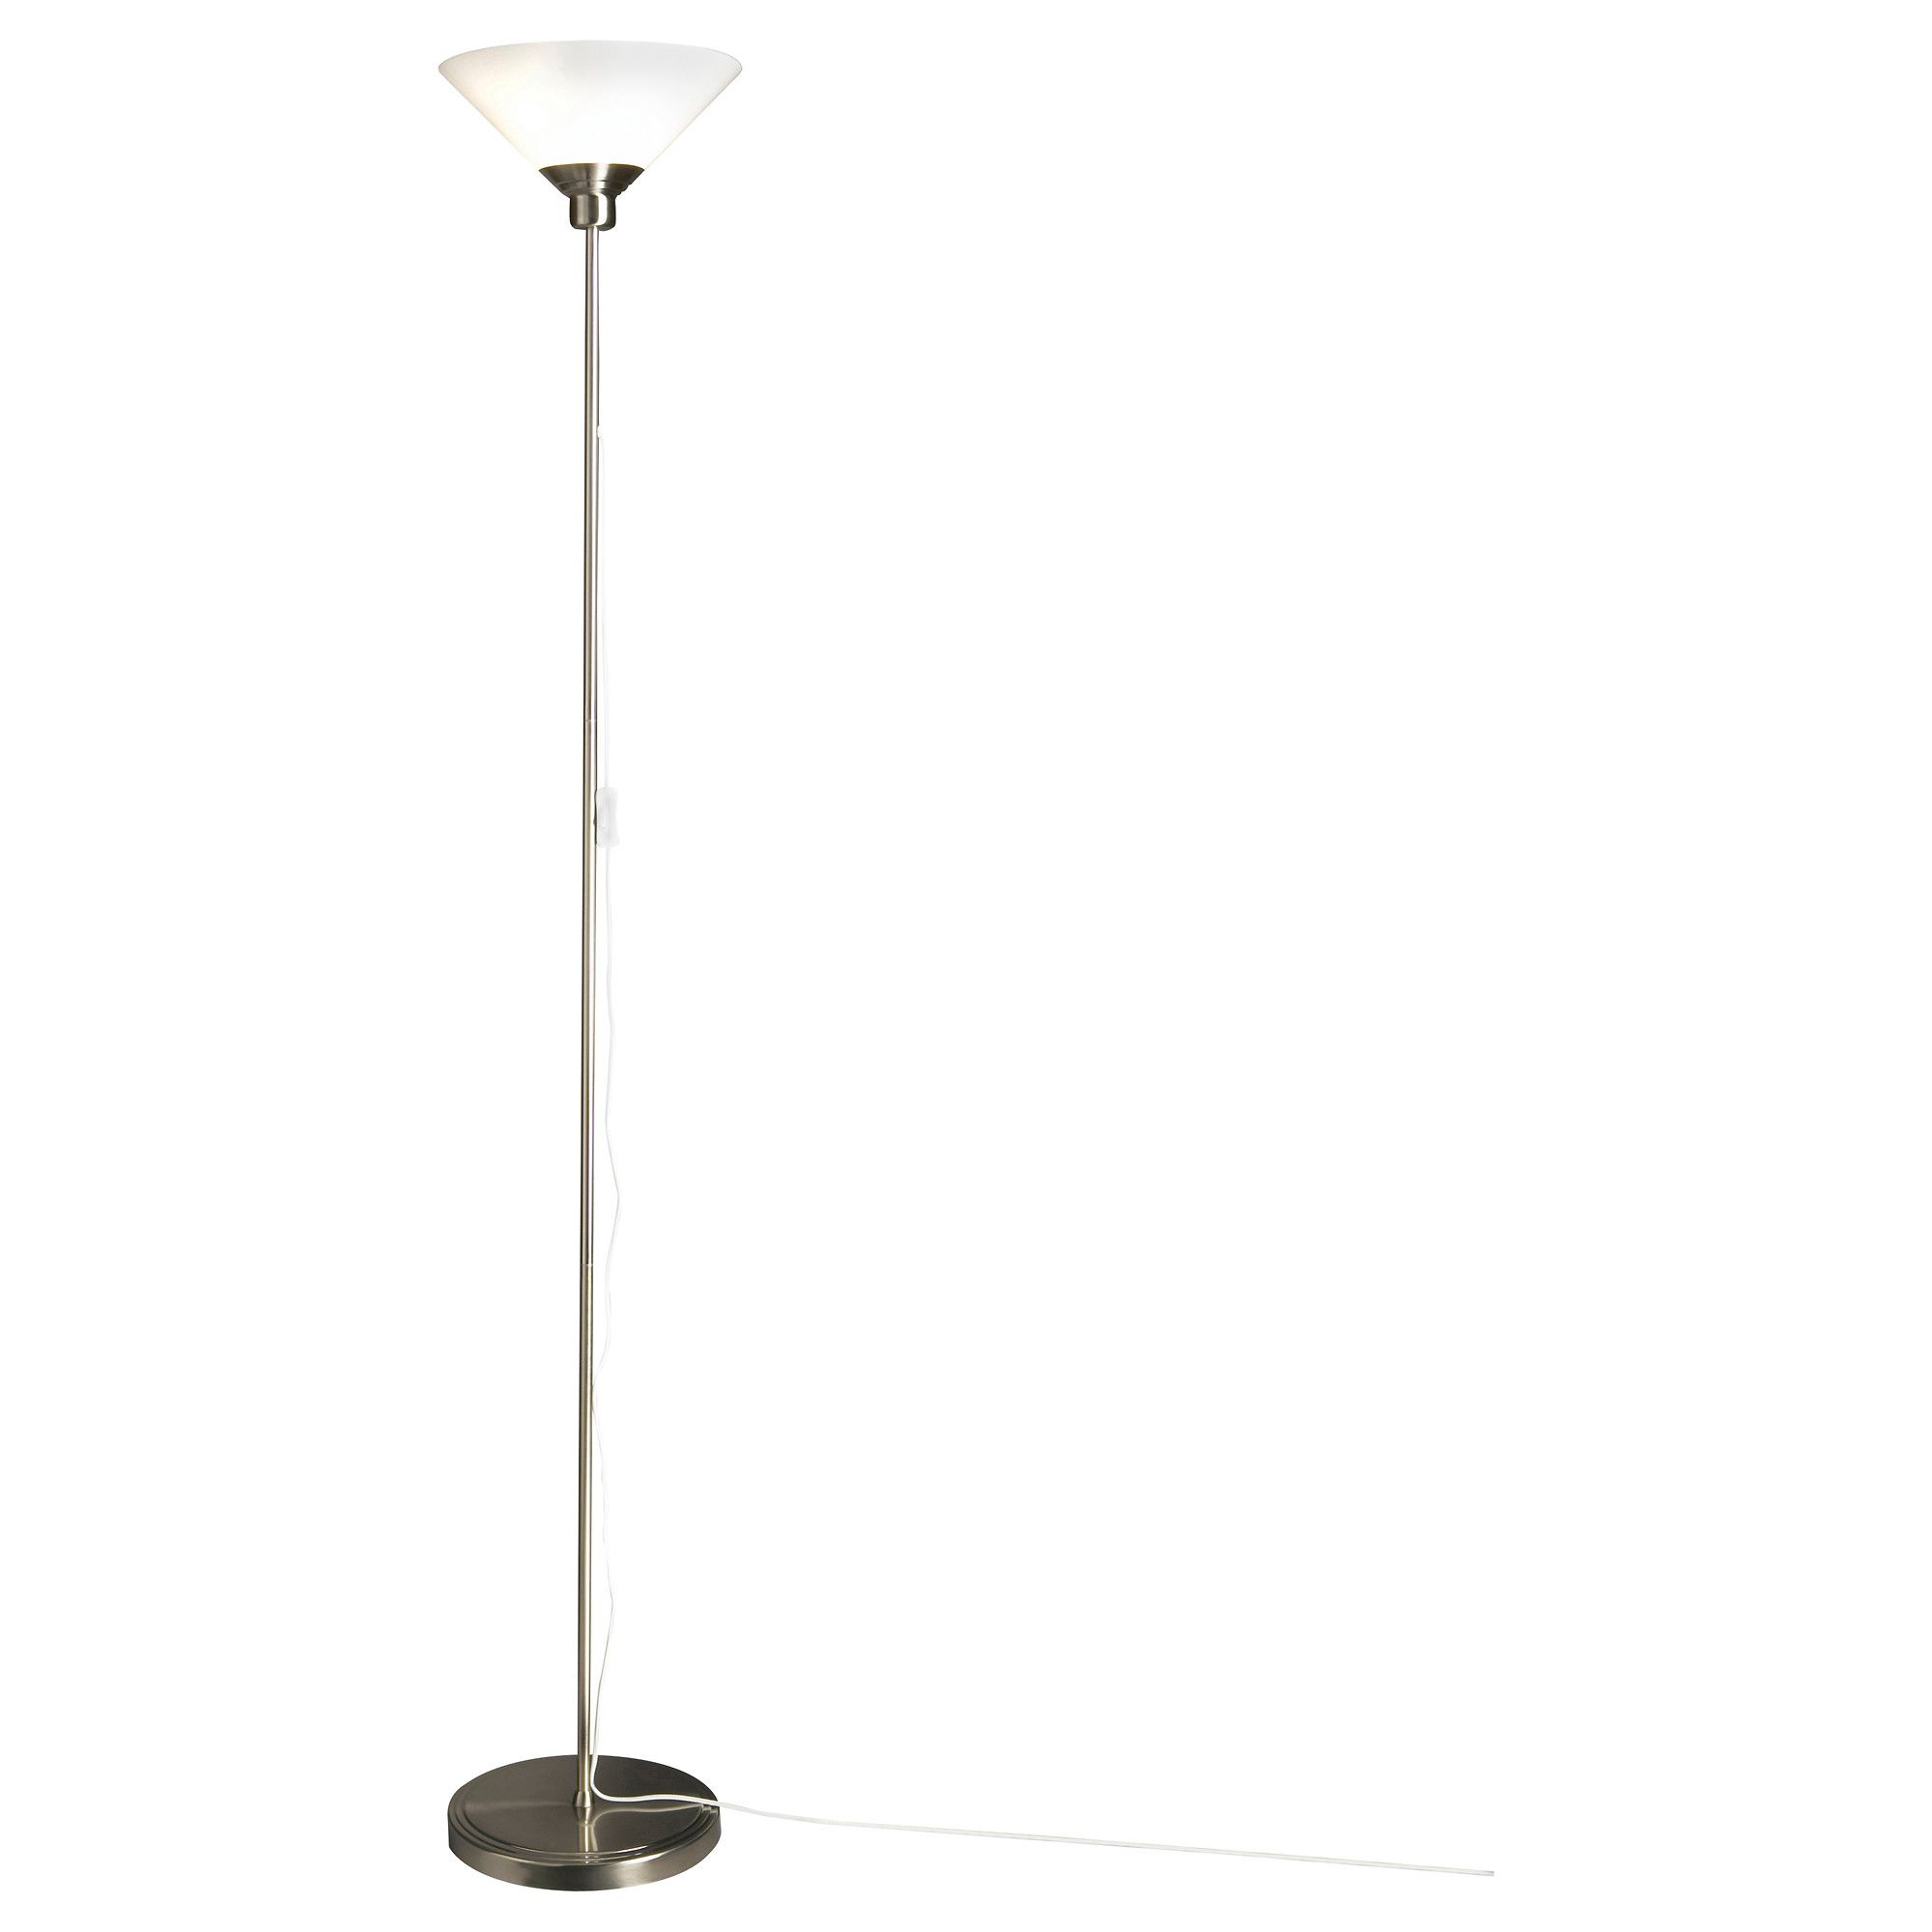 Cheap Floor Lamps Ikea Ikea Kroby Floor Uplight With Led Bulb Each Shade Of